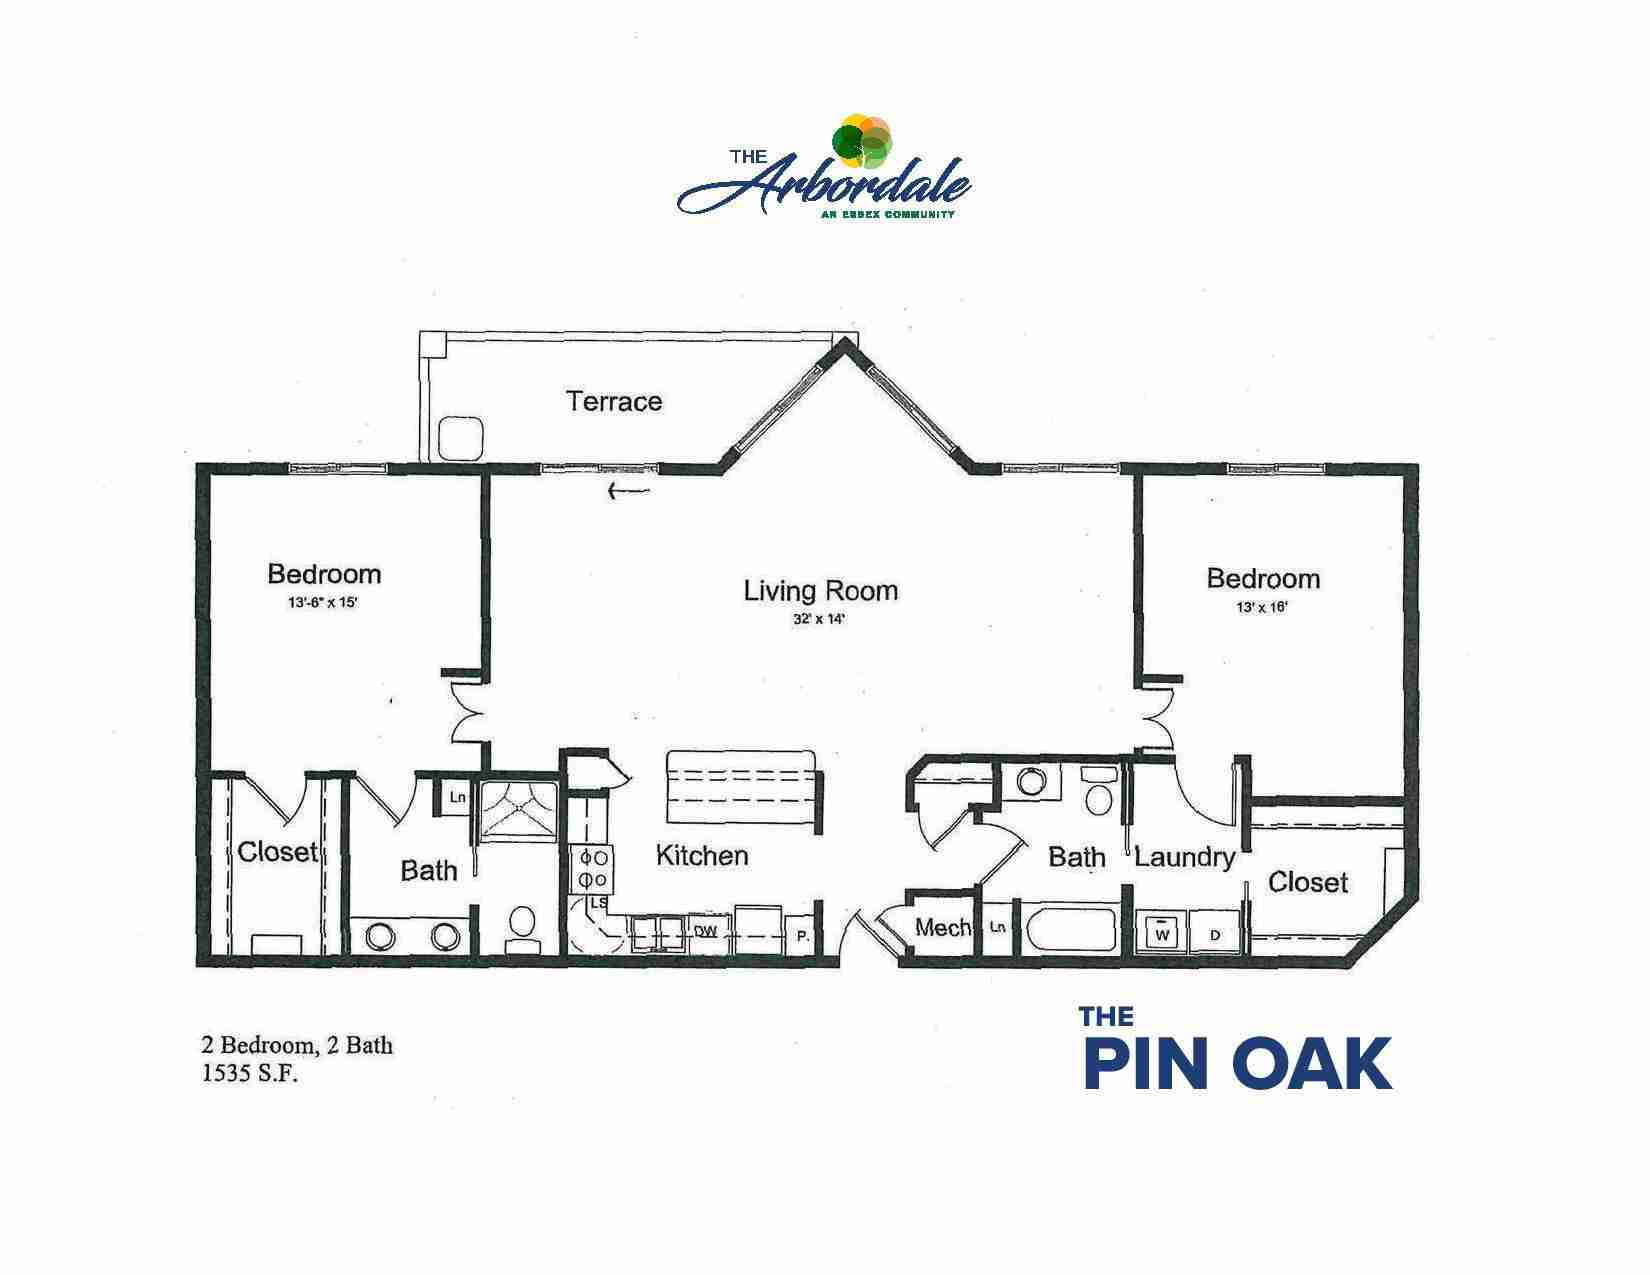 the pin oak floor plan, 2 bedroom, 2 bath, 1535 sq ft